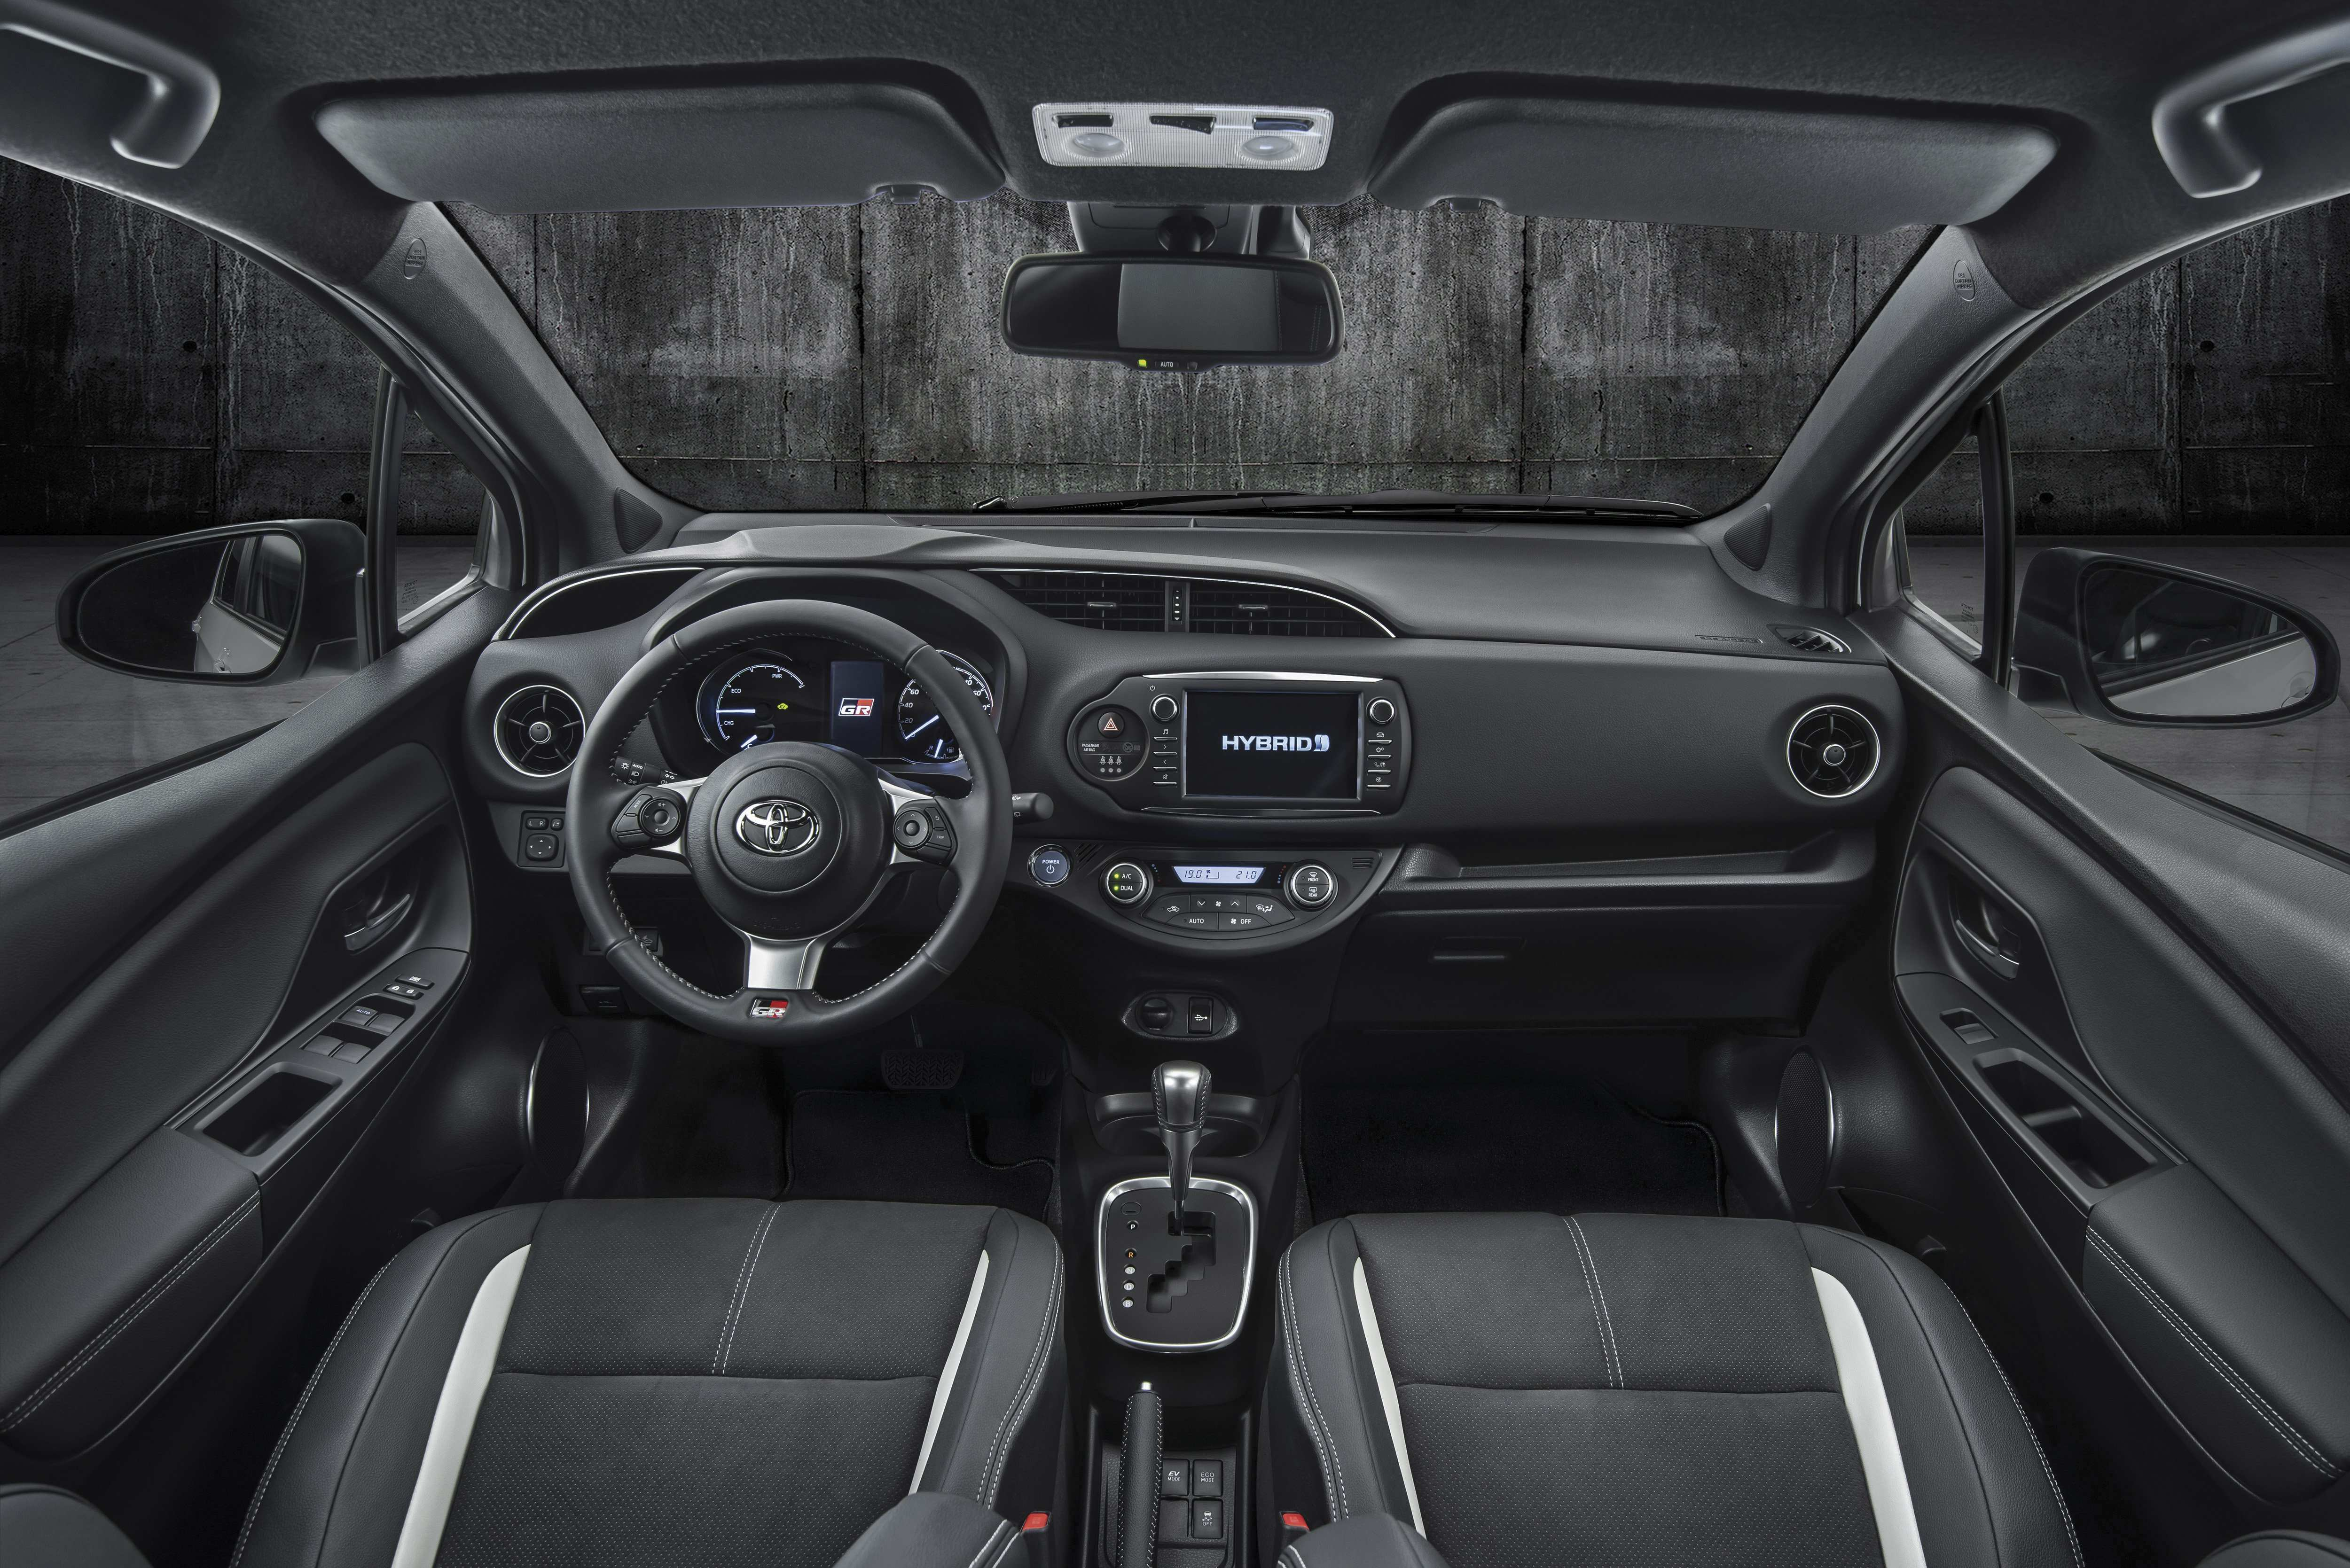 54 Great Toyota Yaris 2019 Interior Redesign and Concept by Toyota Yaris 2019 Interior